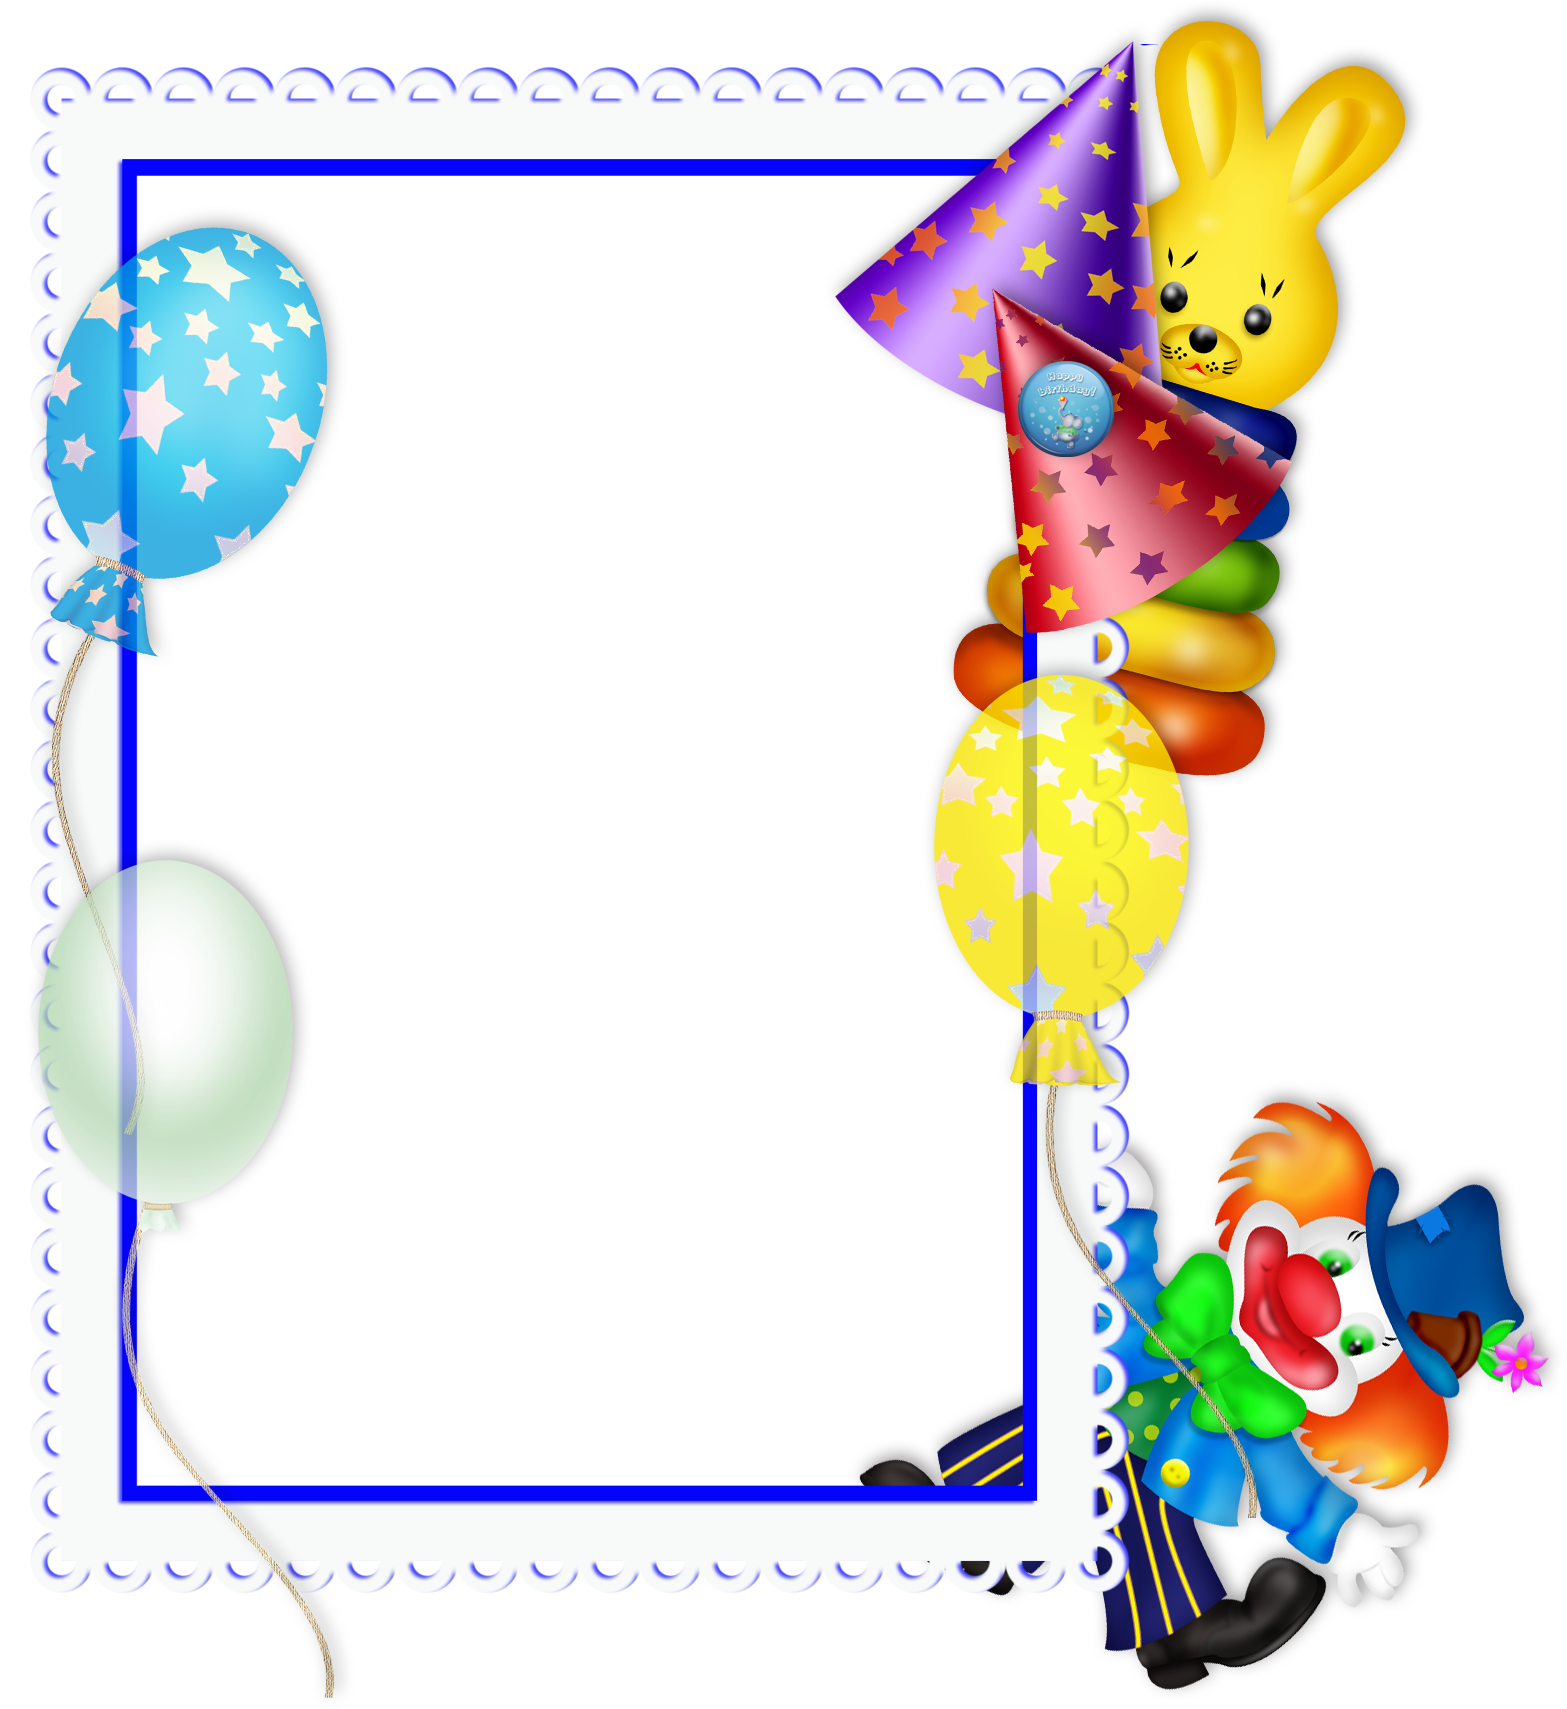 Birthday Party Frame PNG Transparent Image 1567x1709, Birthday Party HD PNG Download